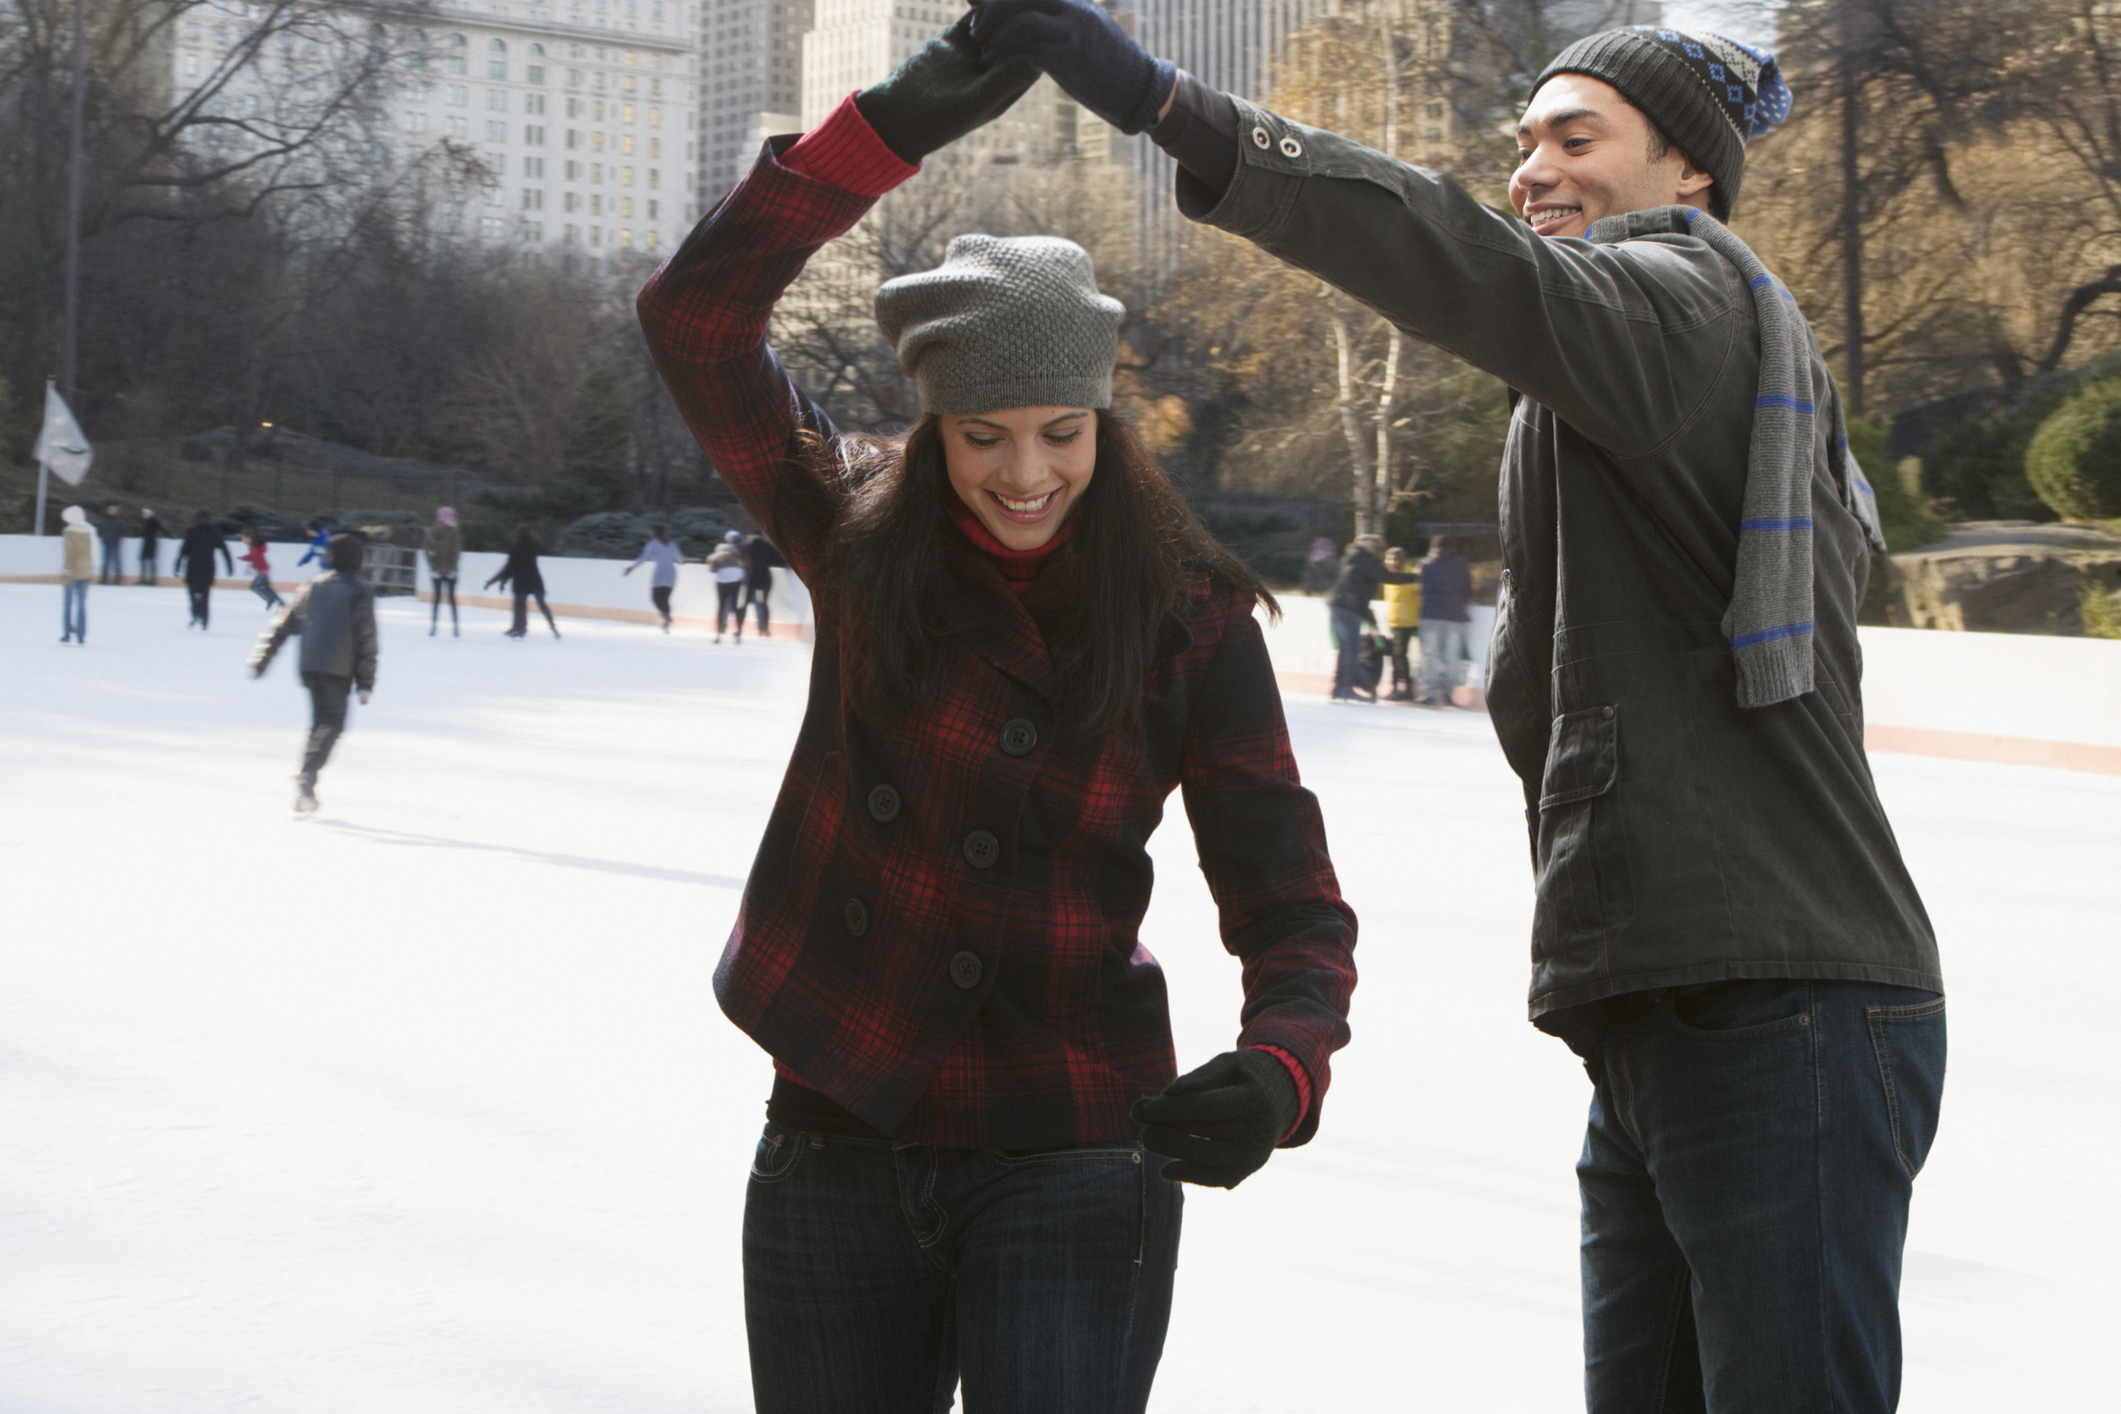 11 expert-recommended date ideas to try with bae this holiday season (that won't break the bank)